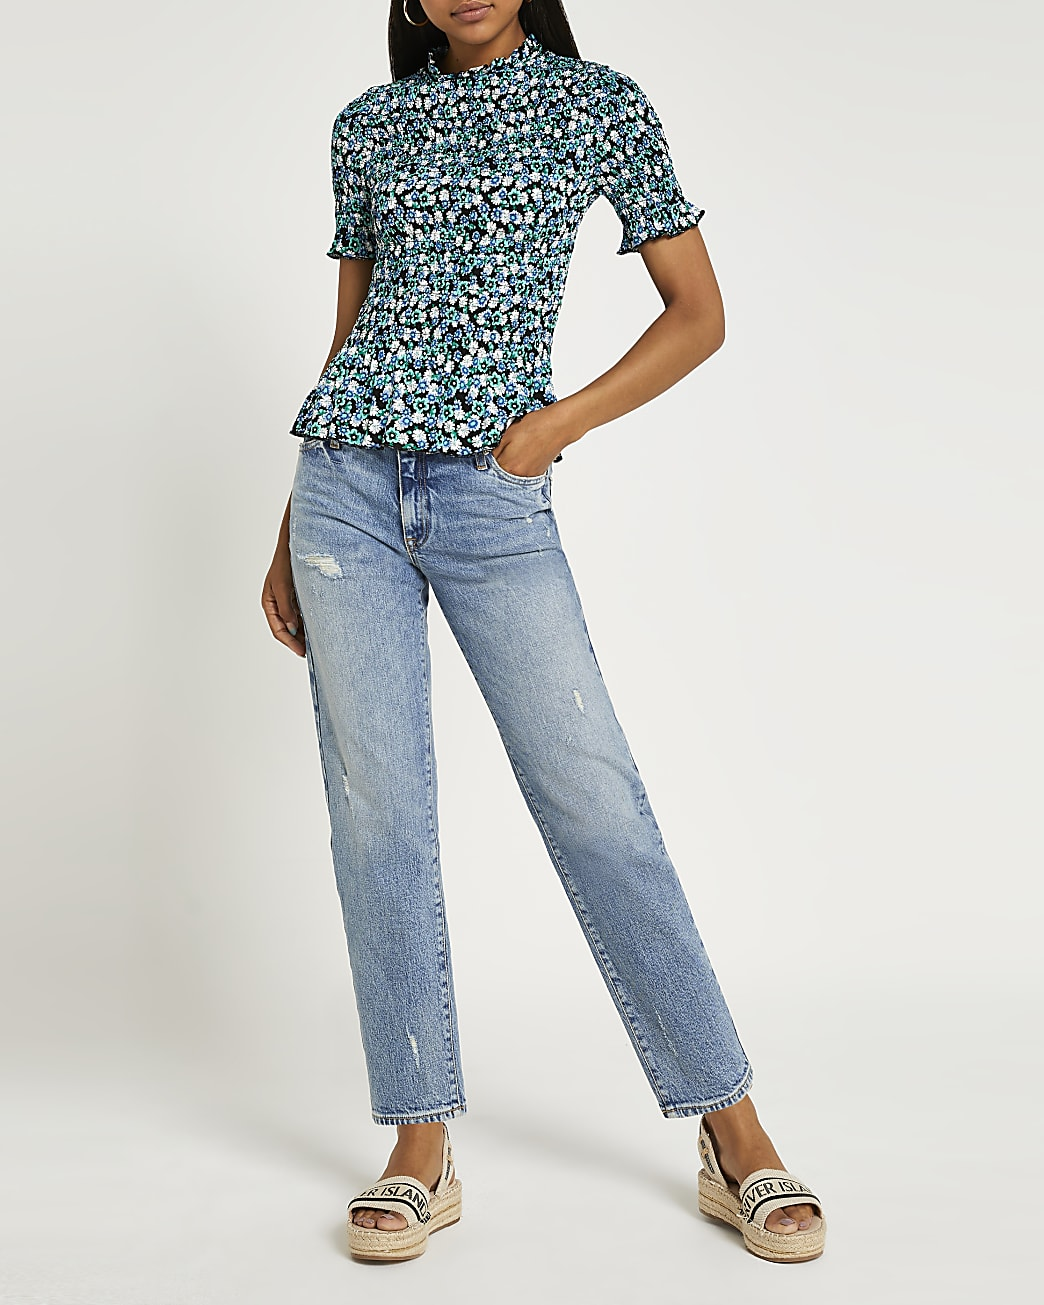 Green floral print shirred top